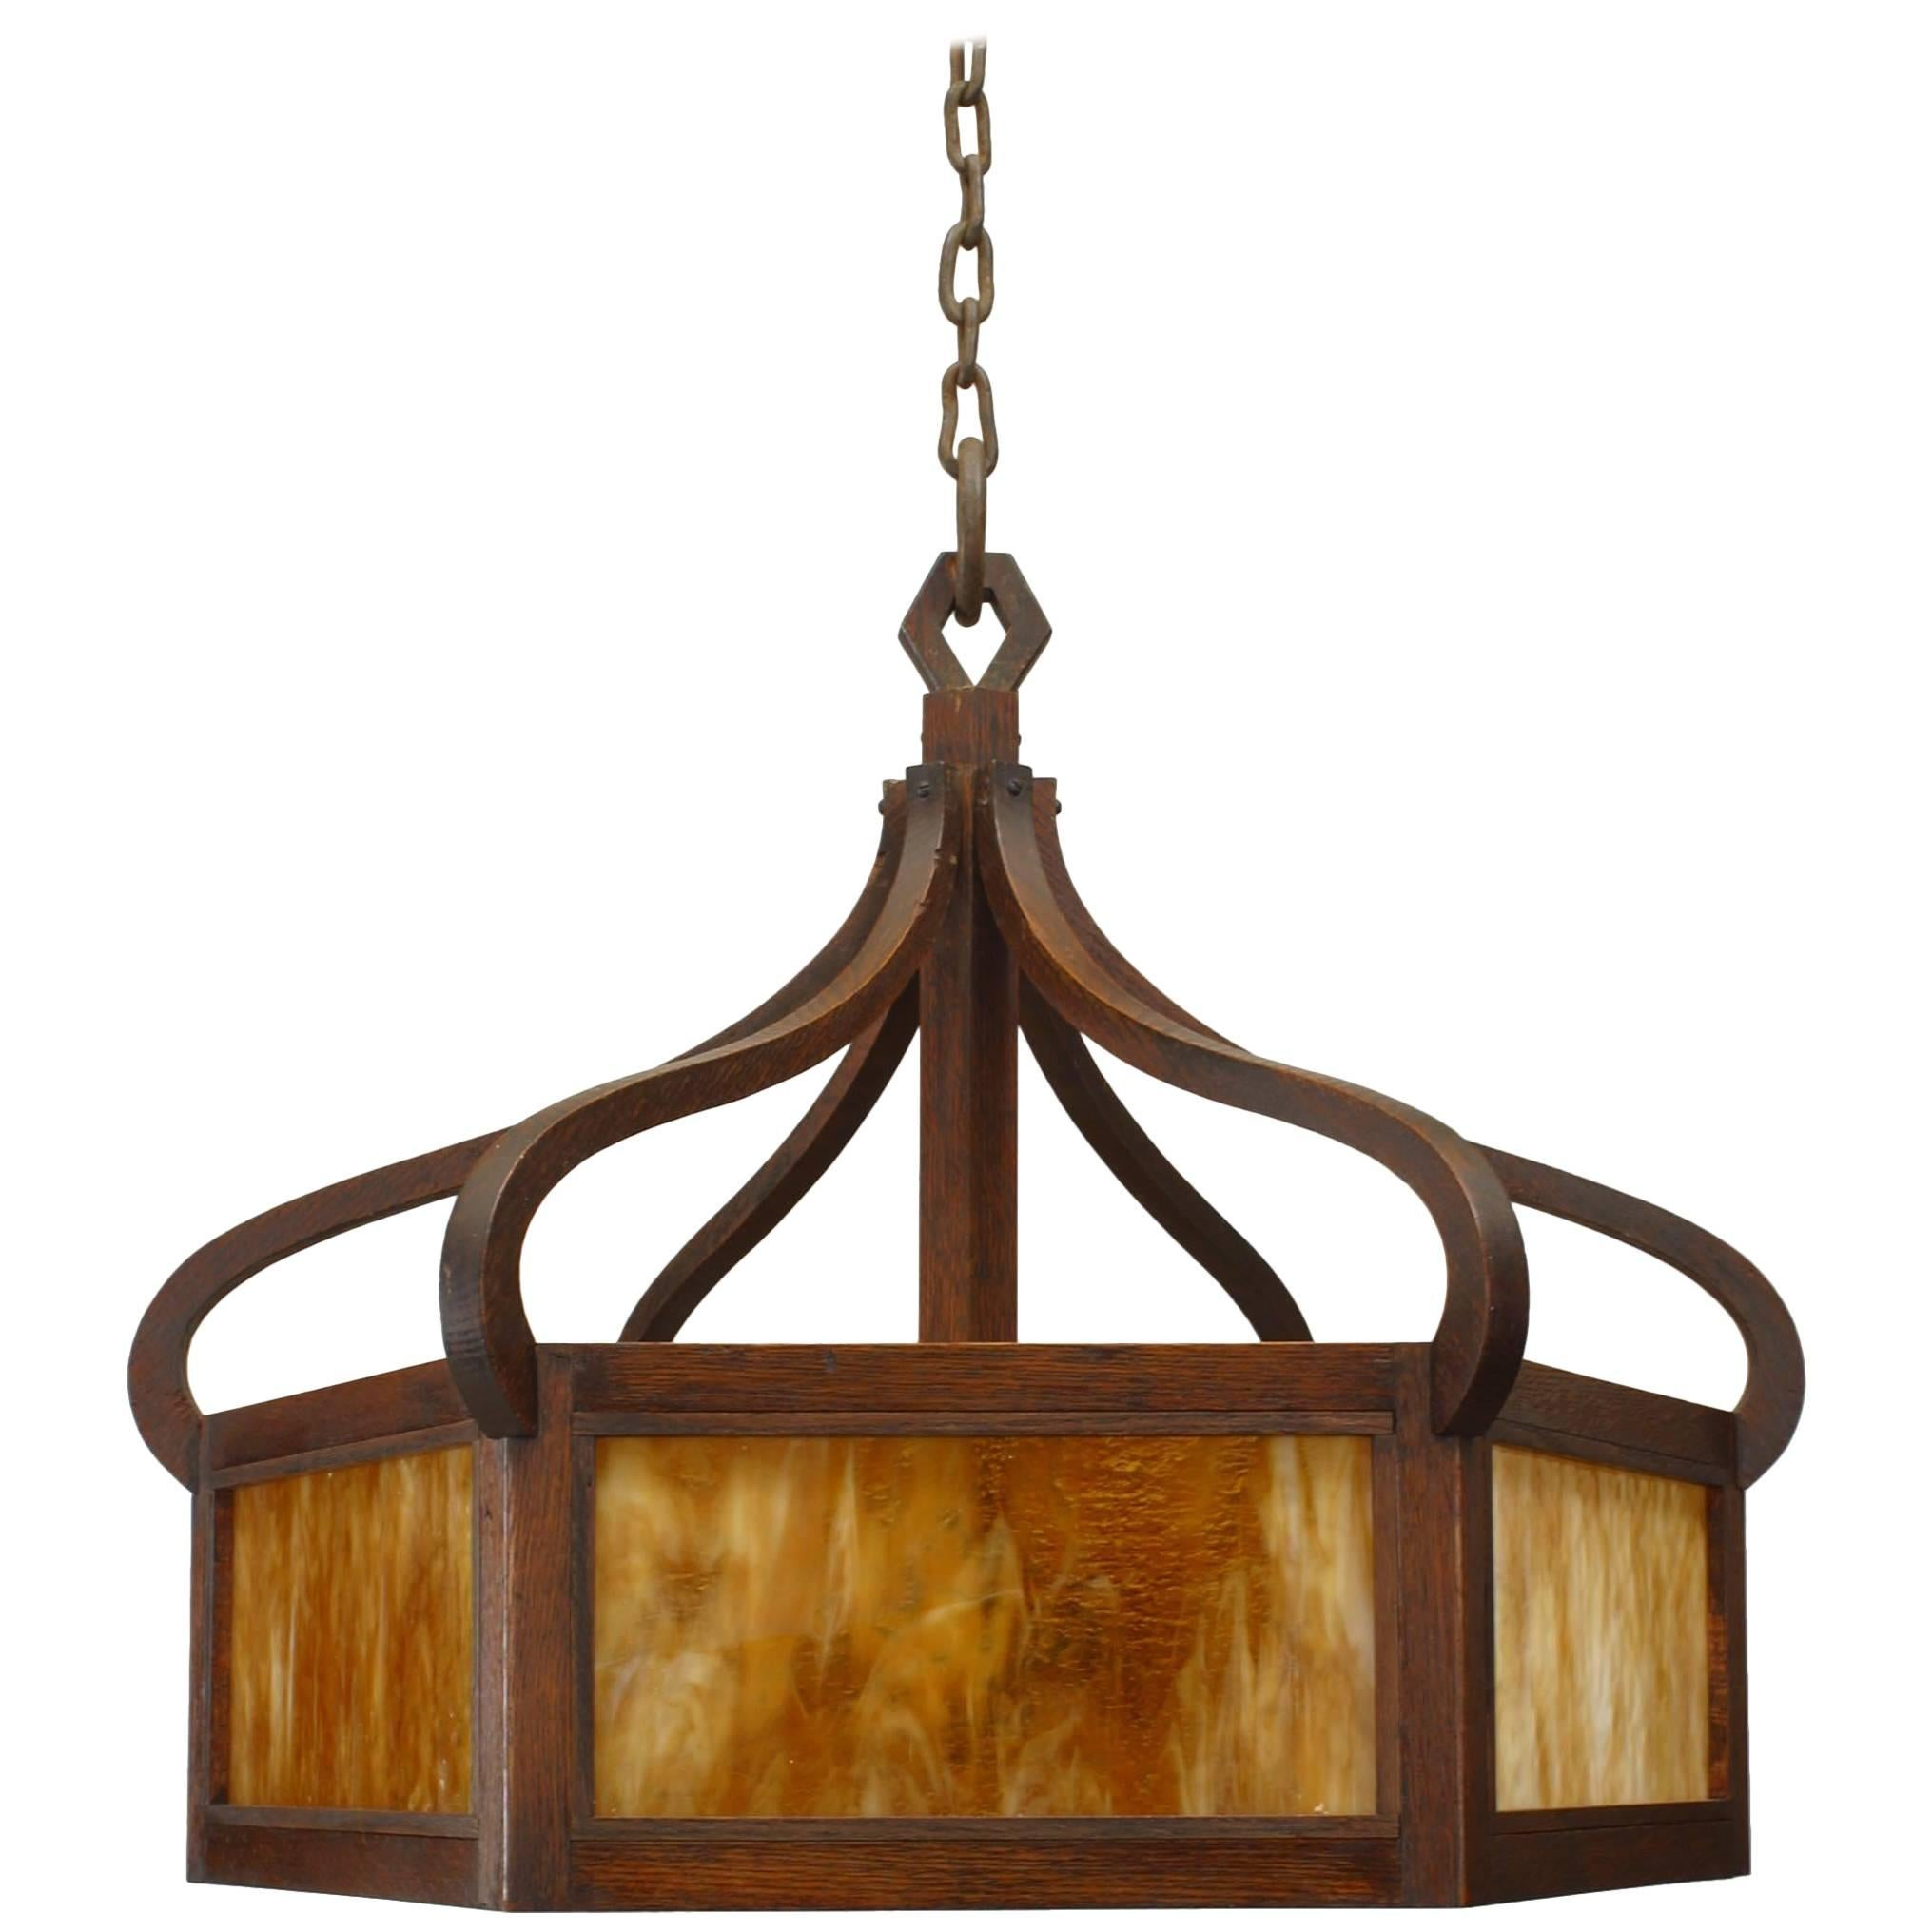 American mission six sided chandelier